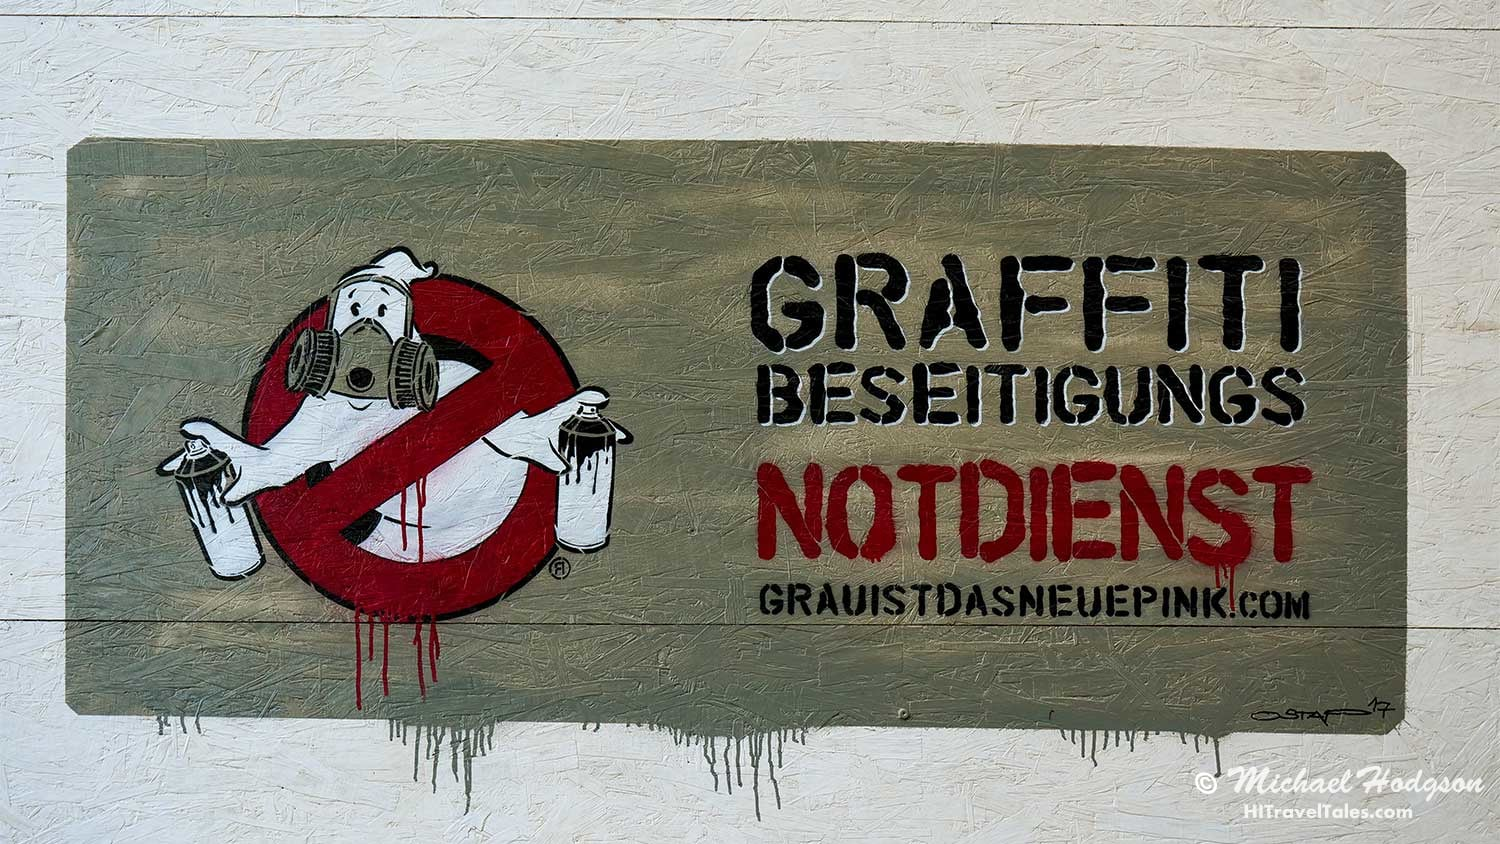 Translation: Graffiti Removal Emergency Service